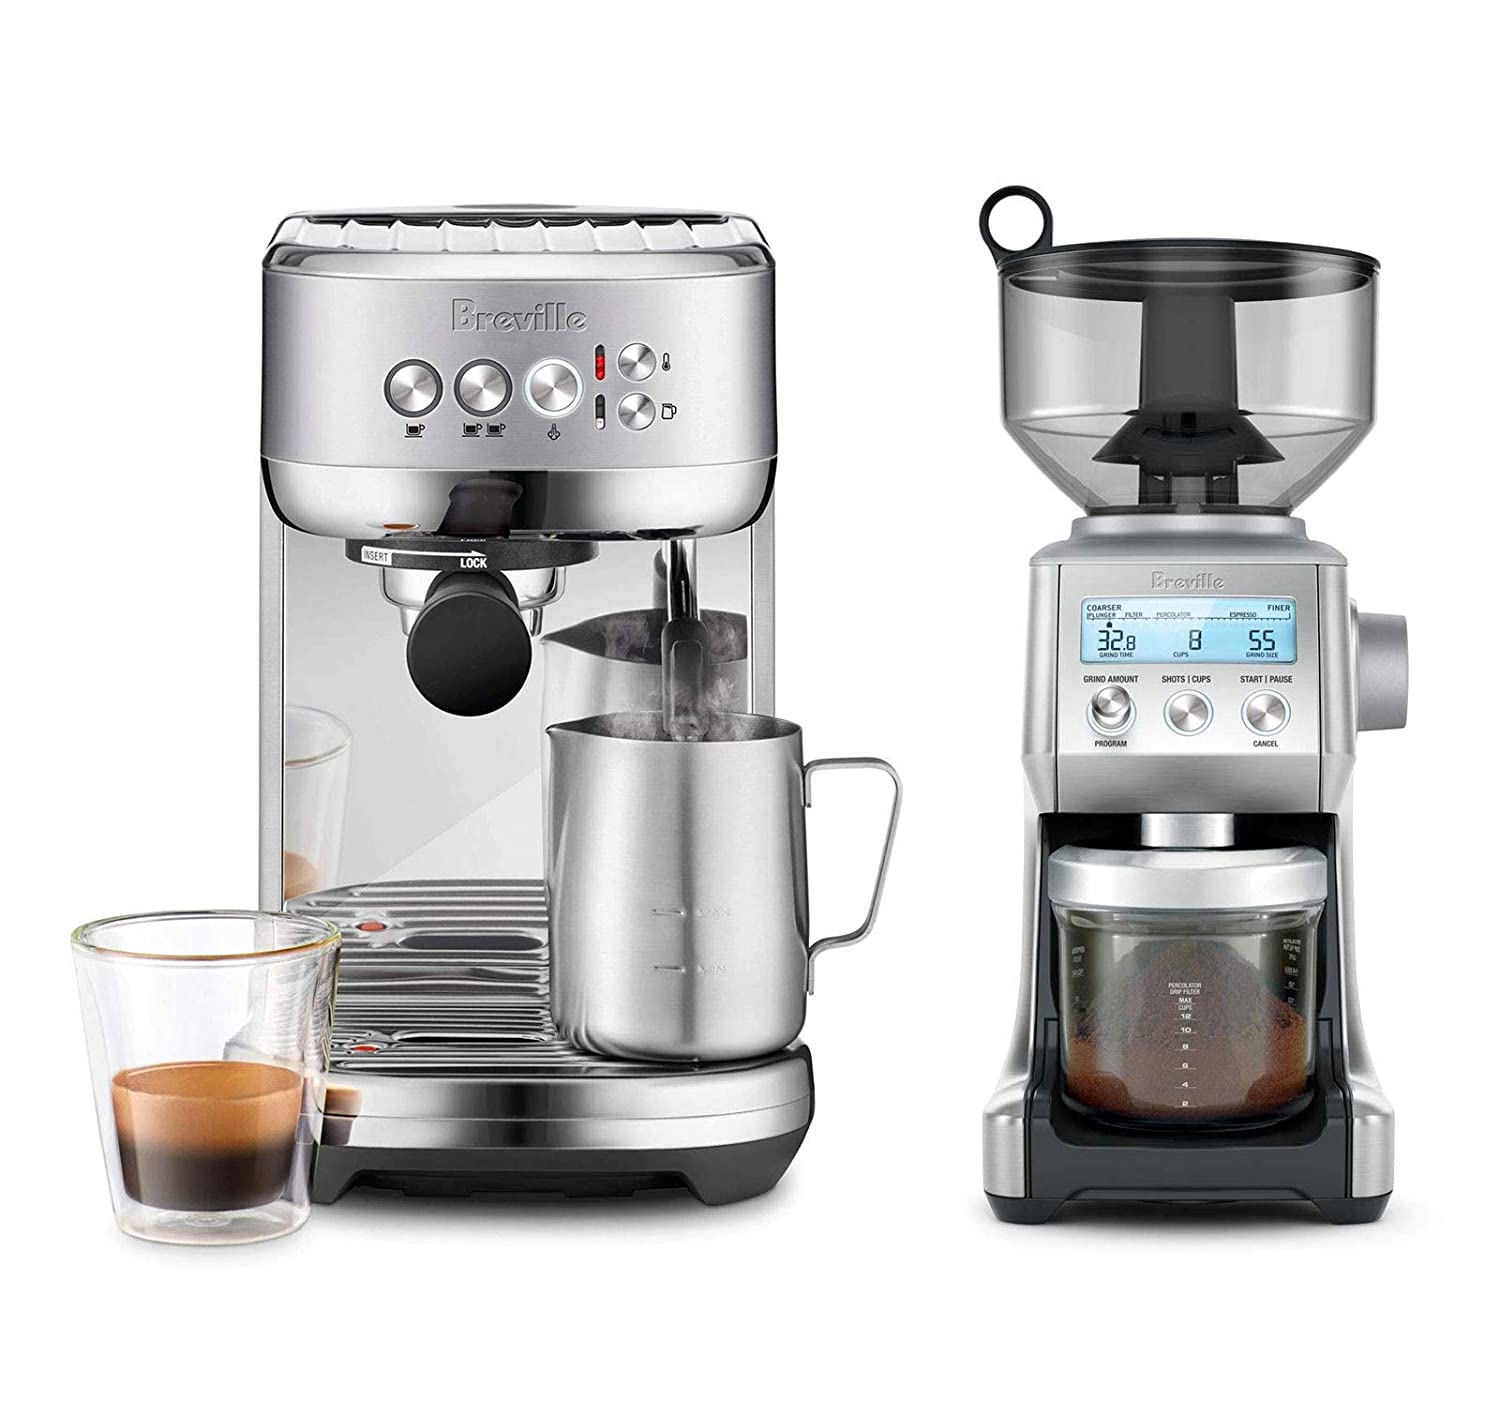 Breville BES500BSS The Bambino Plus Espresso Machine Bundle with Breville BCG820BSS Smart Grinder Pro - Stainless Steel